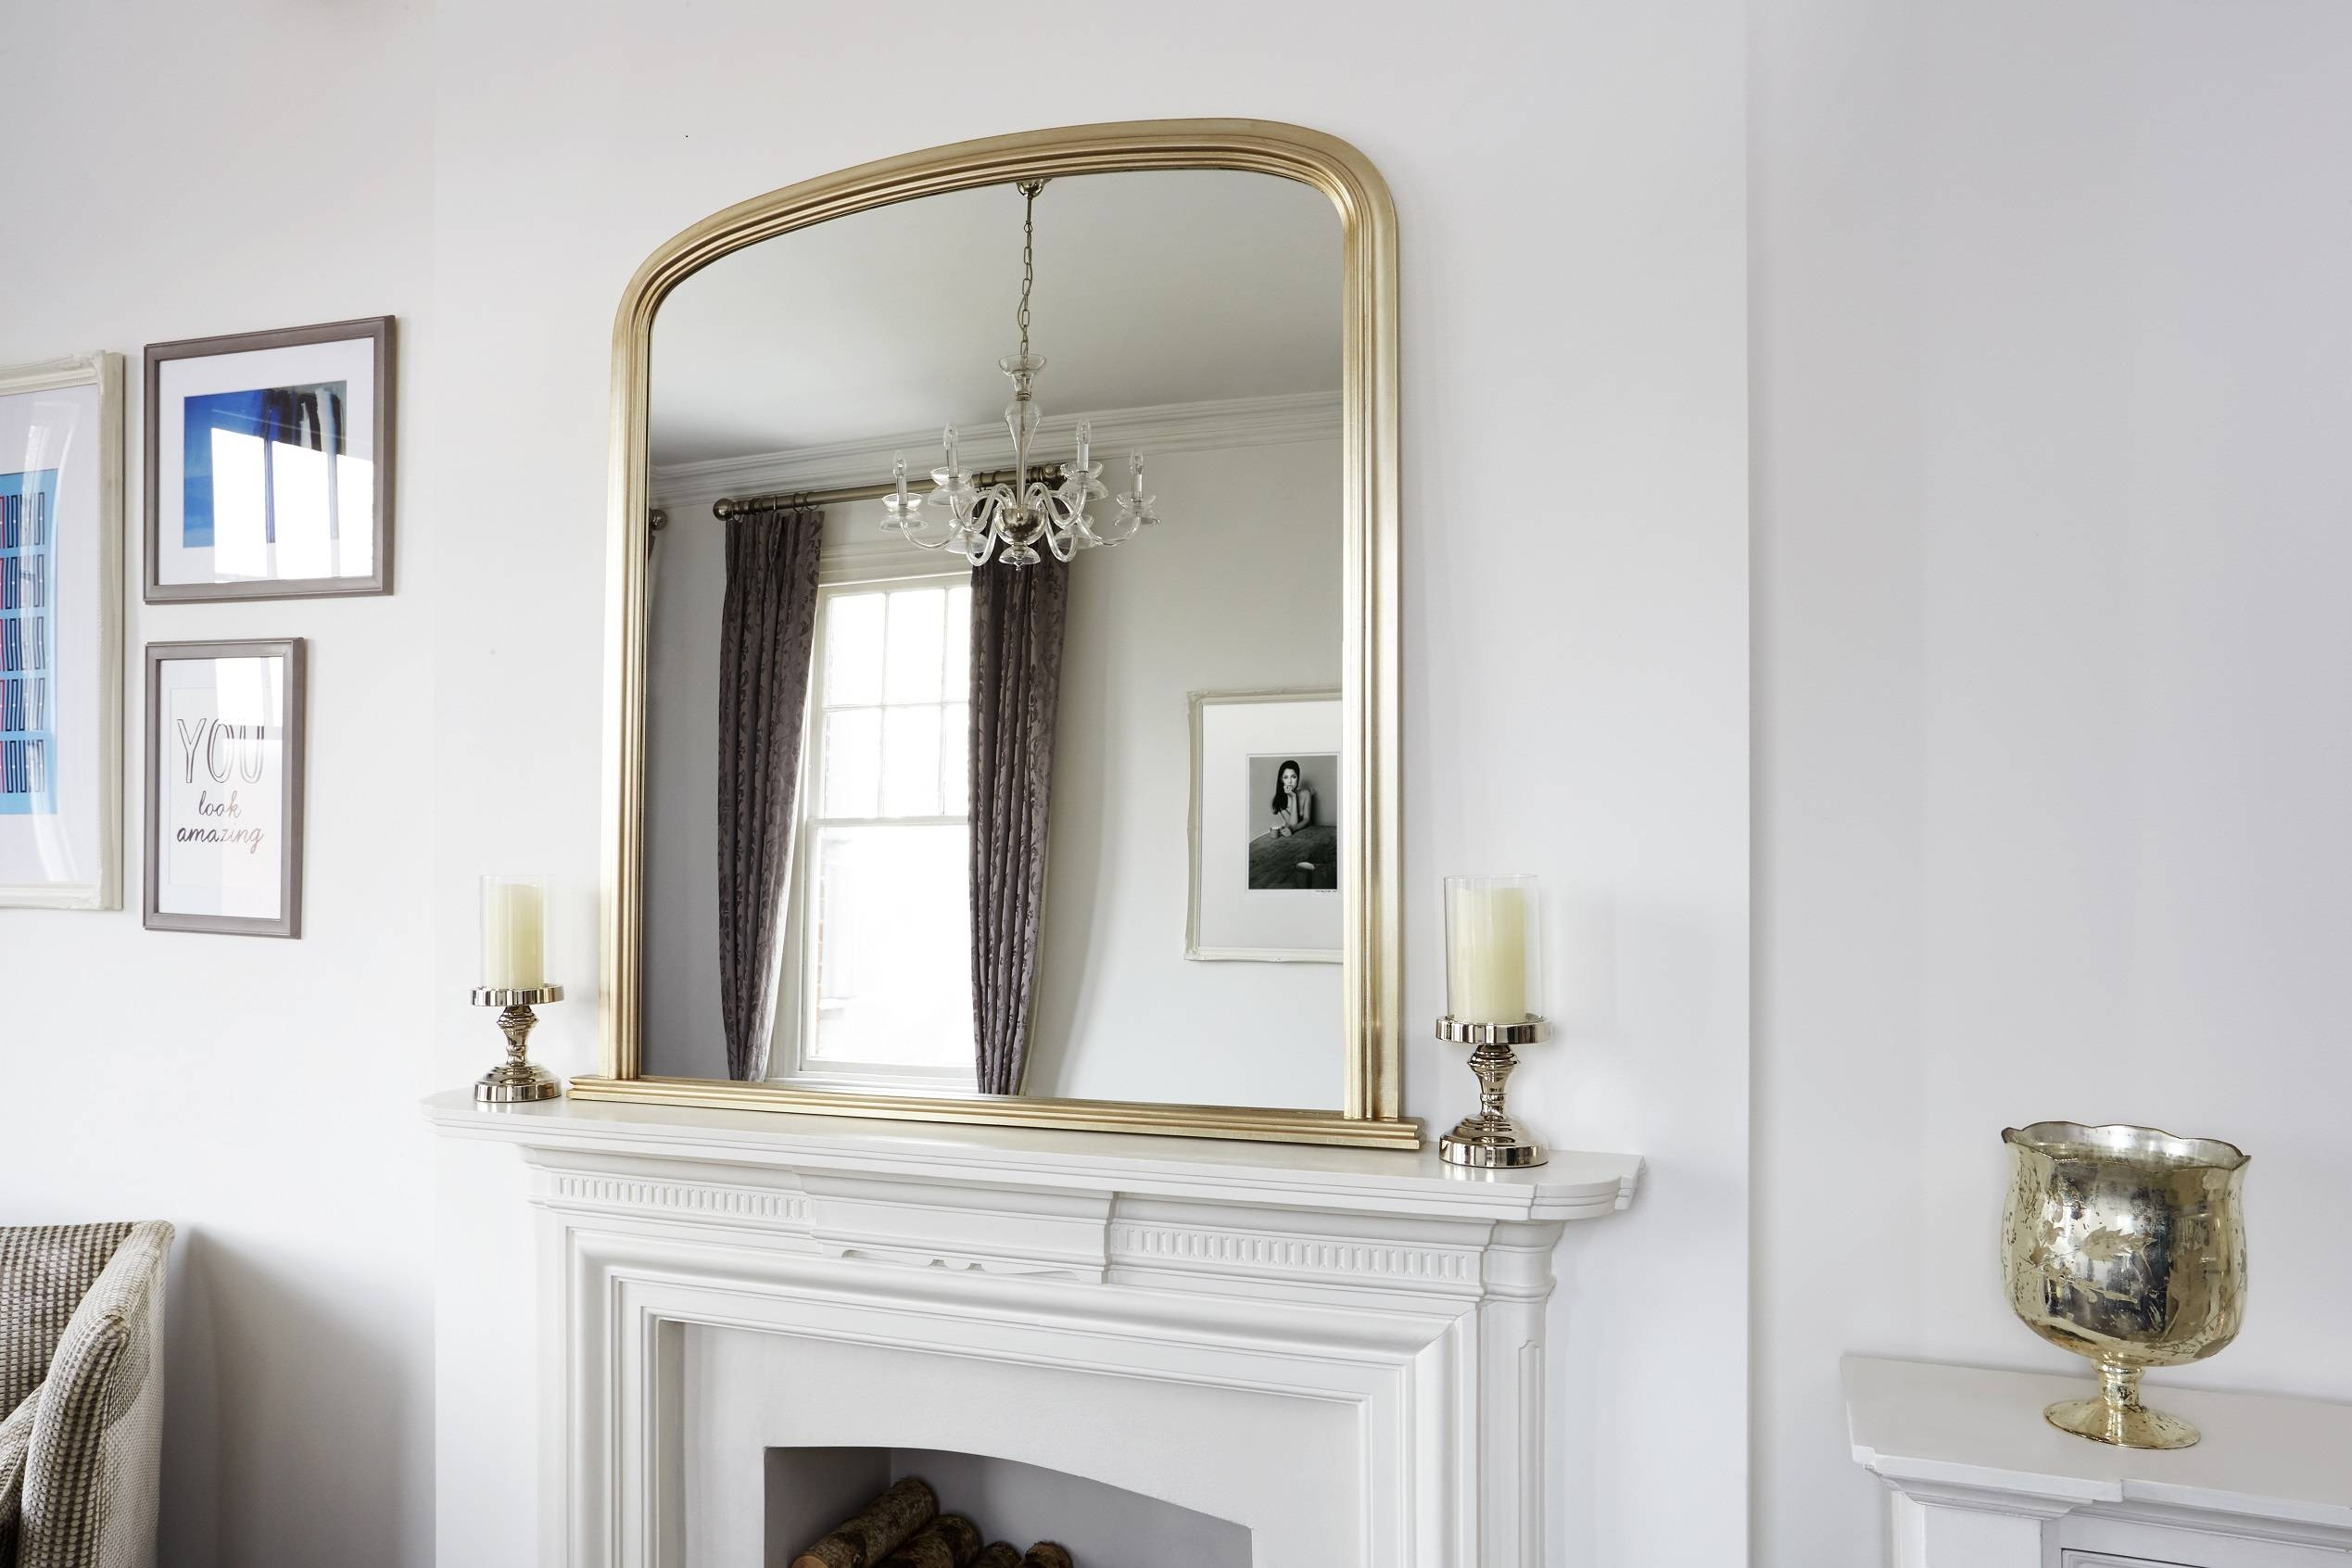 How To Choose The Best Mirror For Your Space With Mantelpiece Mirrors (View 9 of 15)